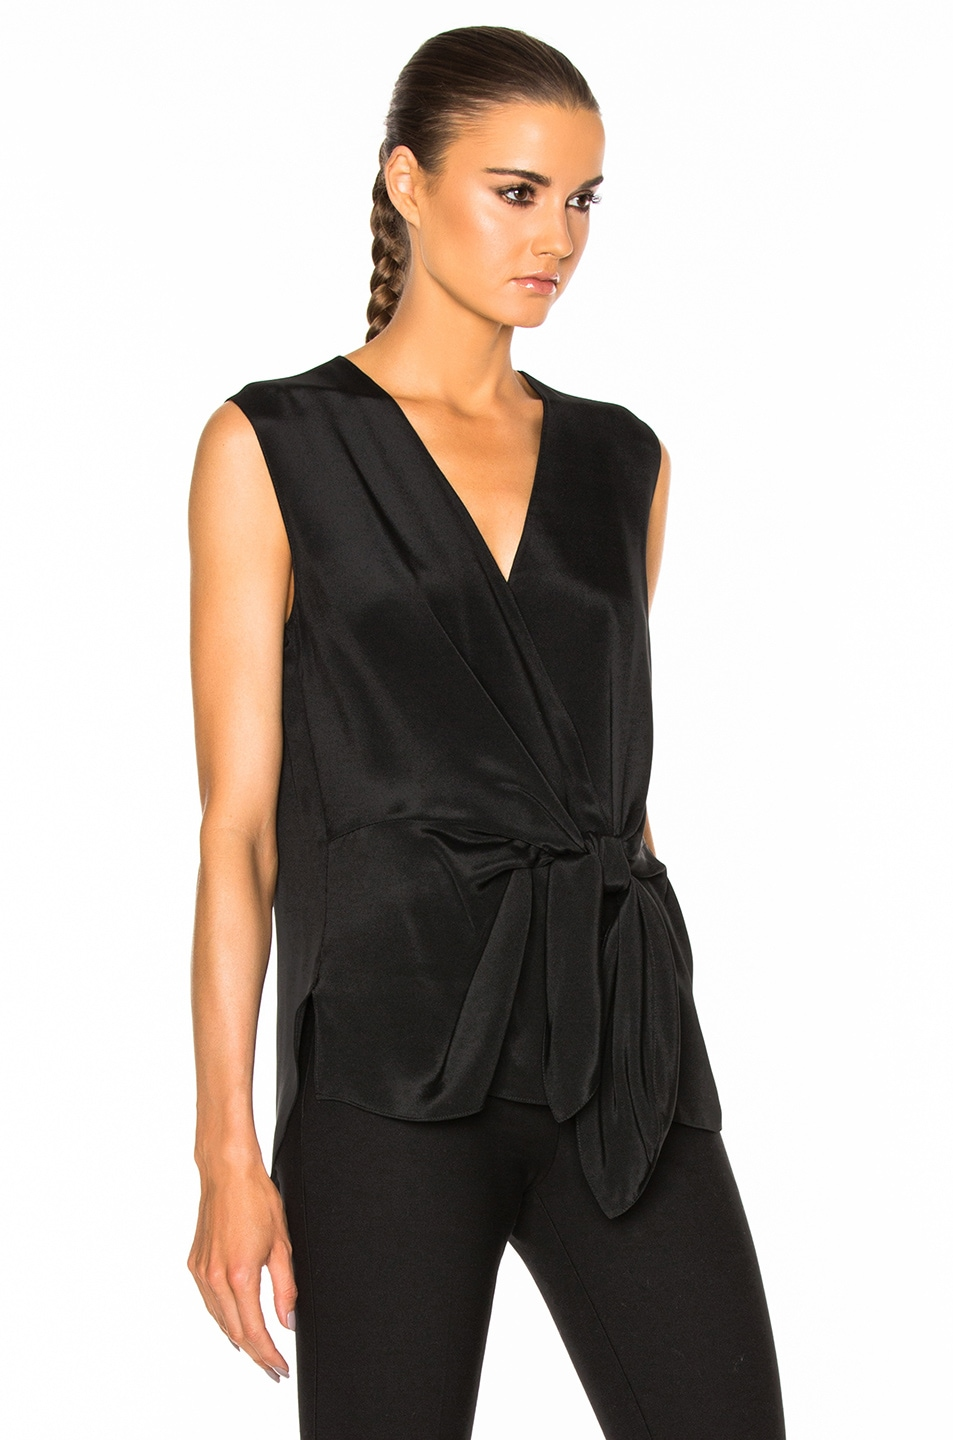 Image 3 of 3.1 phillip lim Sleeveless Front Knot Top in Black